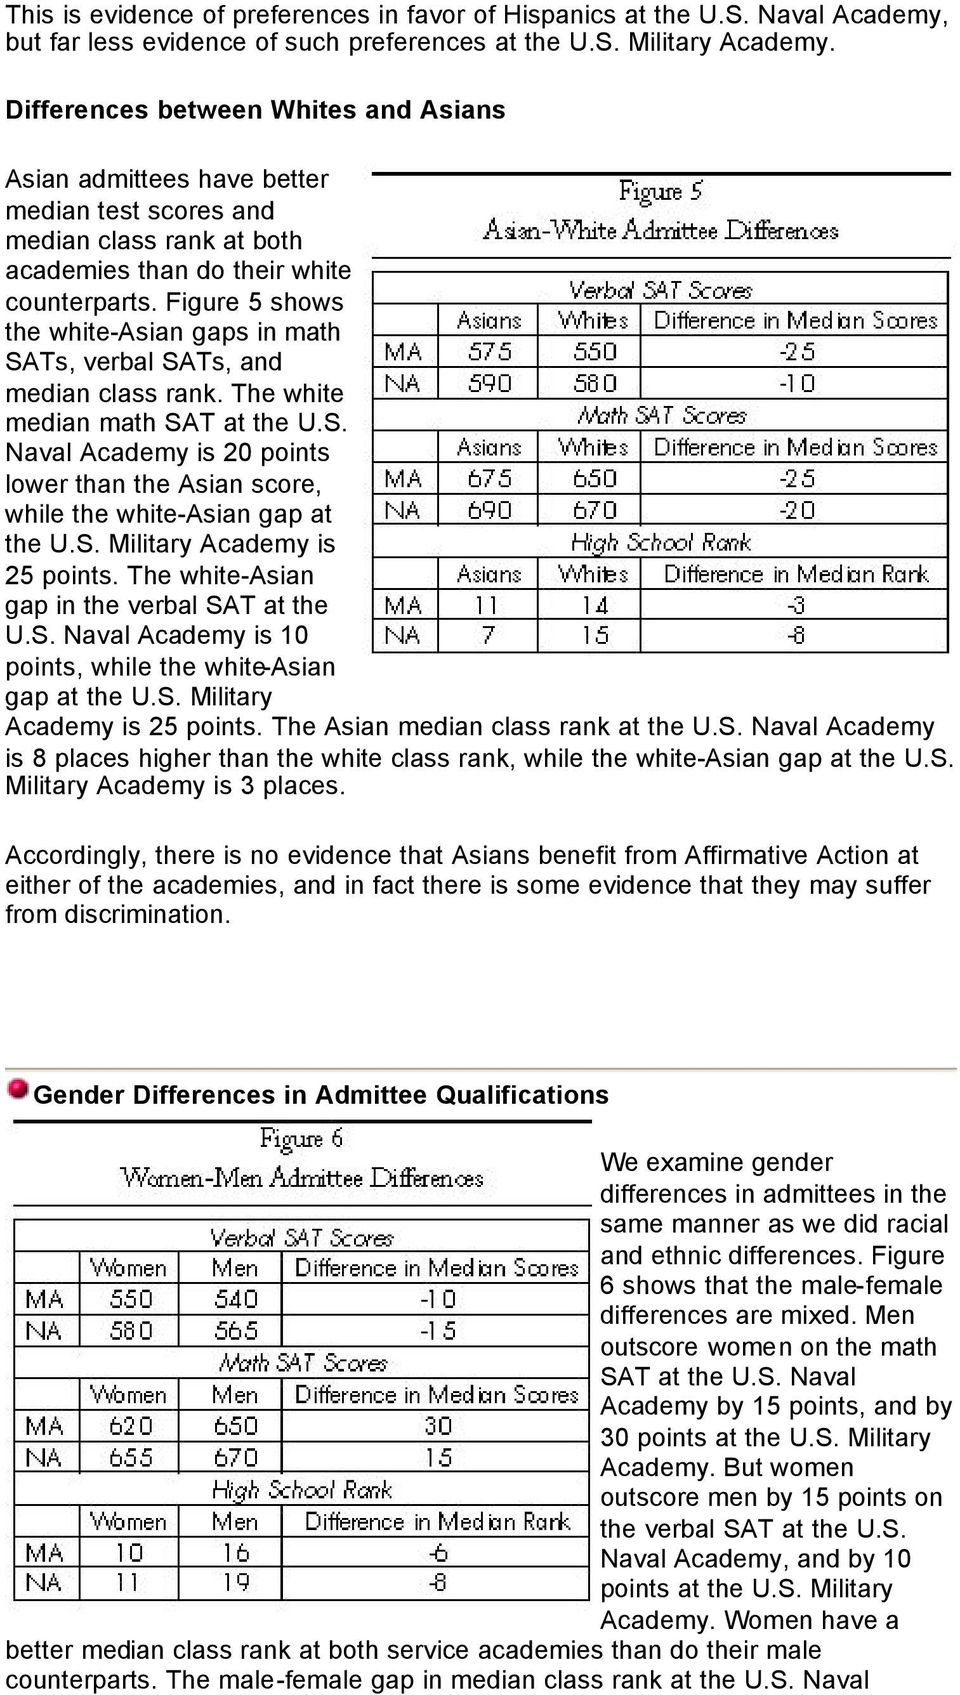 Figure 5 shows the white-asian gaps in math SATs, verbal SATs, and median class rank. The white median math SAT at the U.S. Naval Academy is 20 points lower than the Asian score, while the white-asian gap at the U.